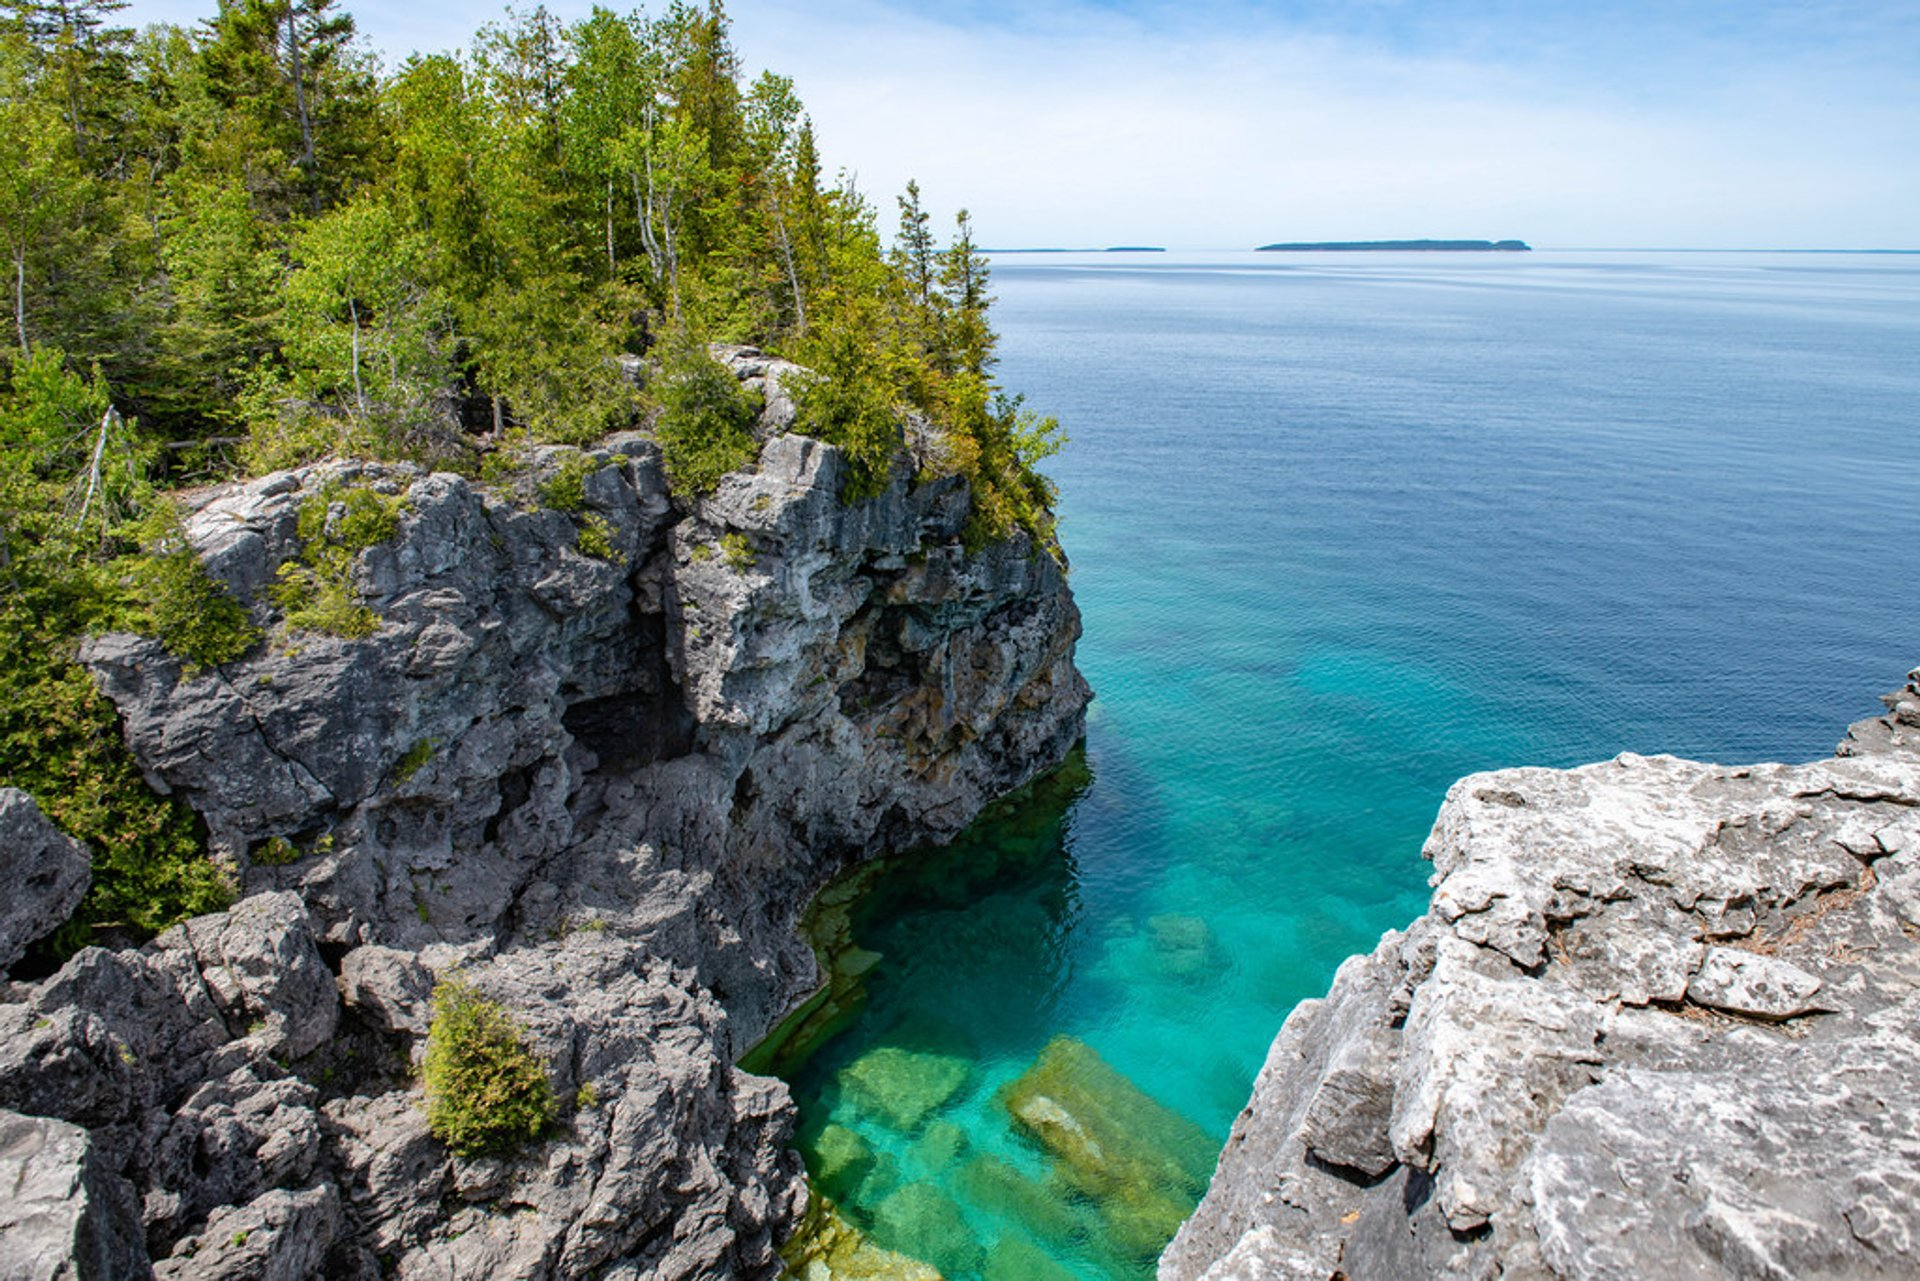 The Grotto's Shoreline, Bruce Peninsula National Park 2020